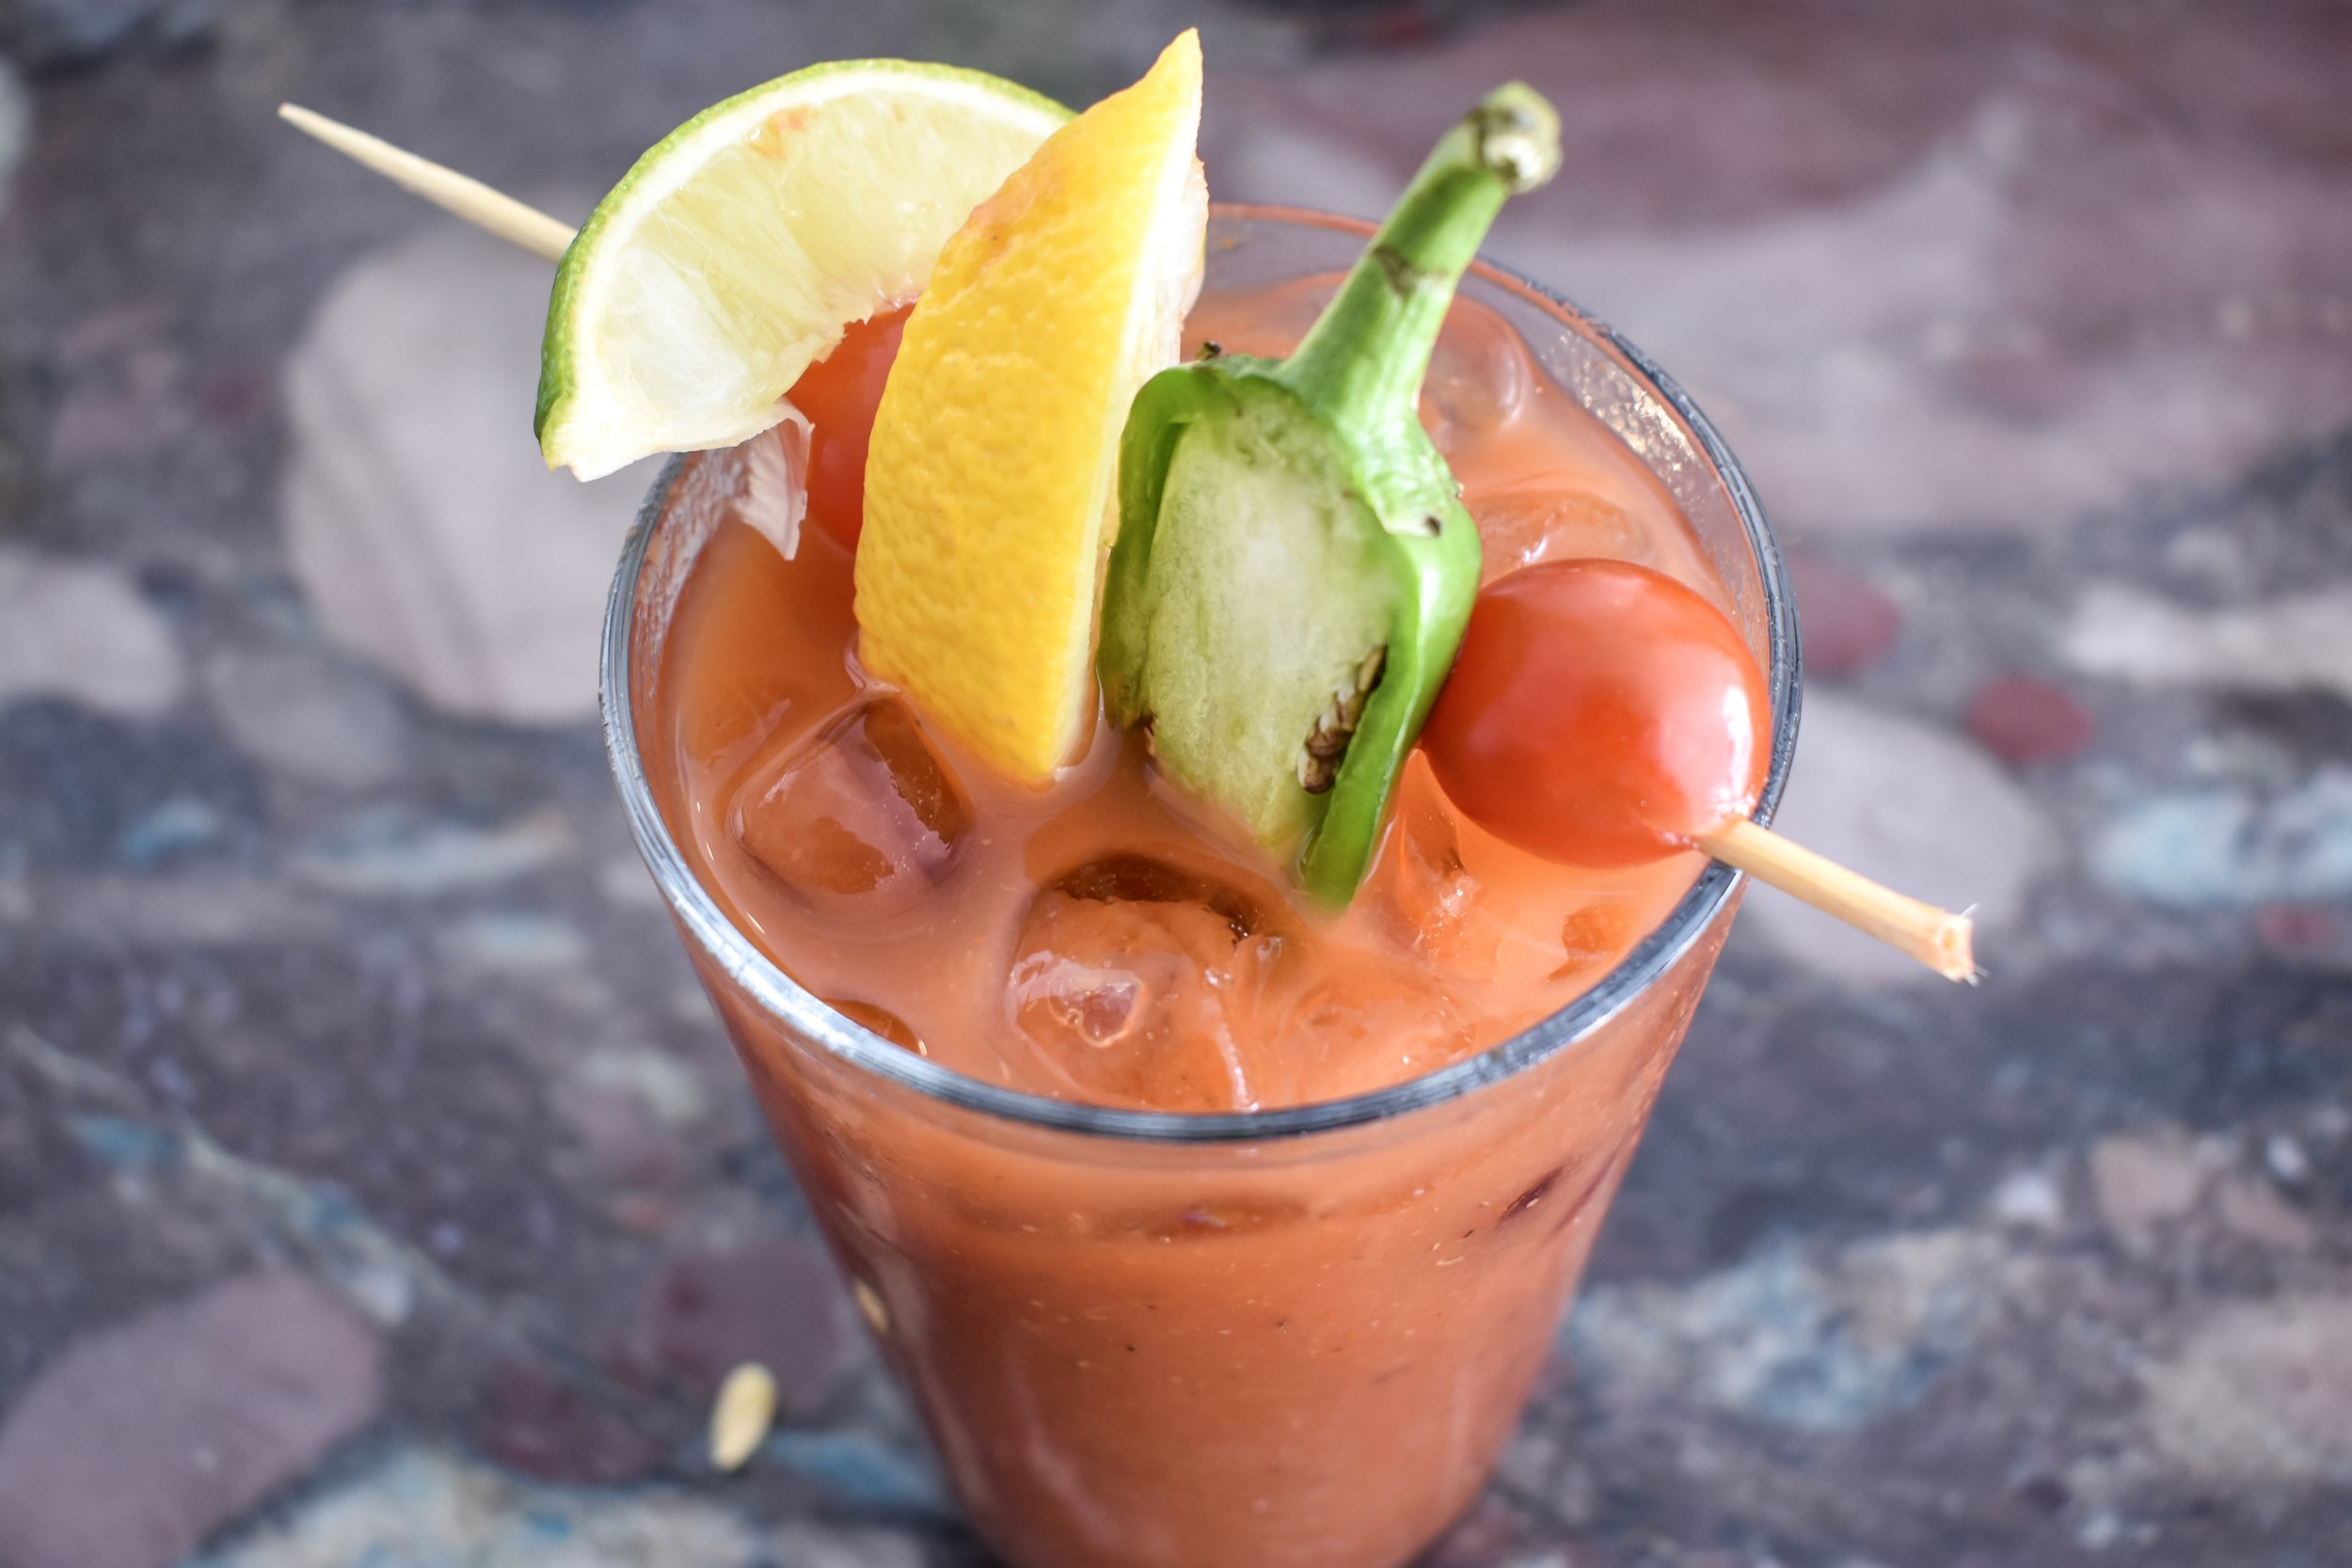 popes vegan bloody mary mix vegan bloody mary recipe bloody mary obsessed.jpg